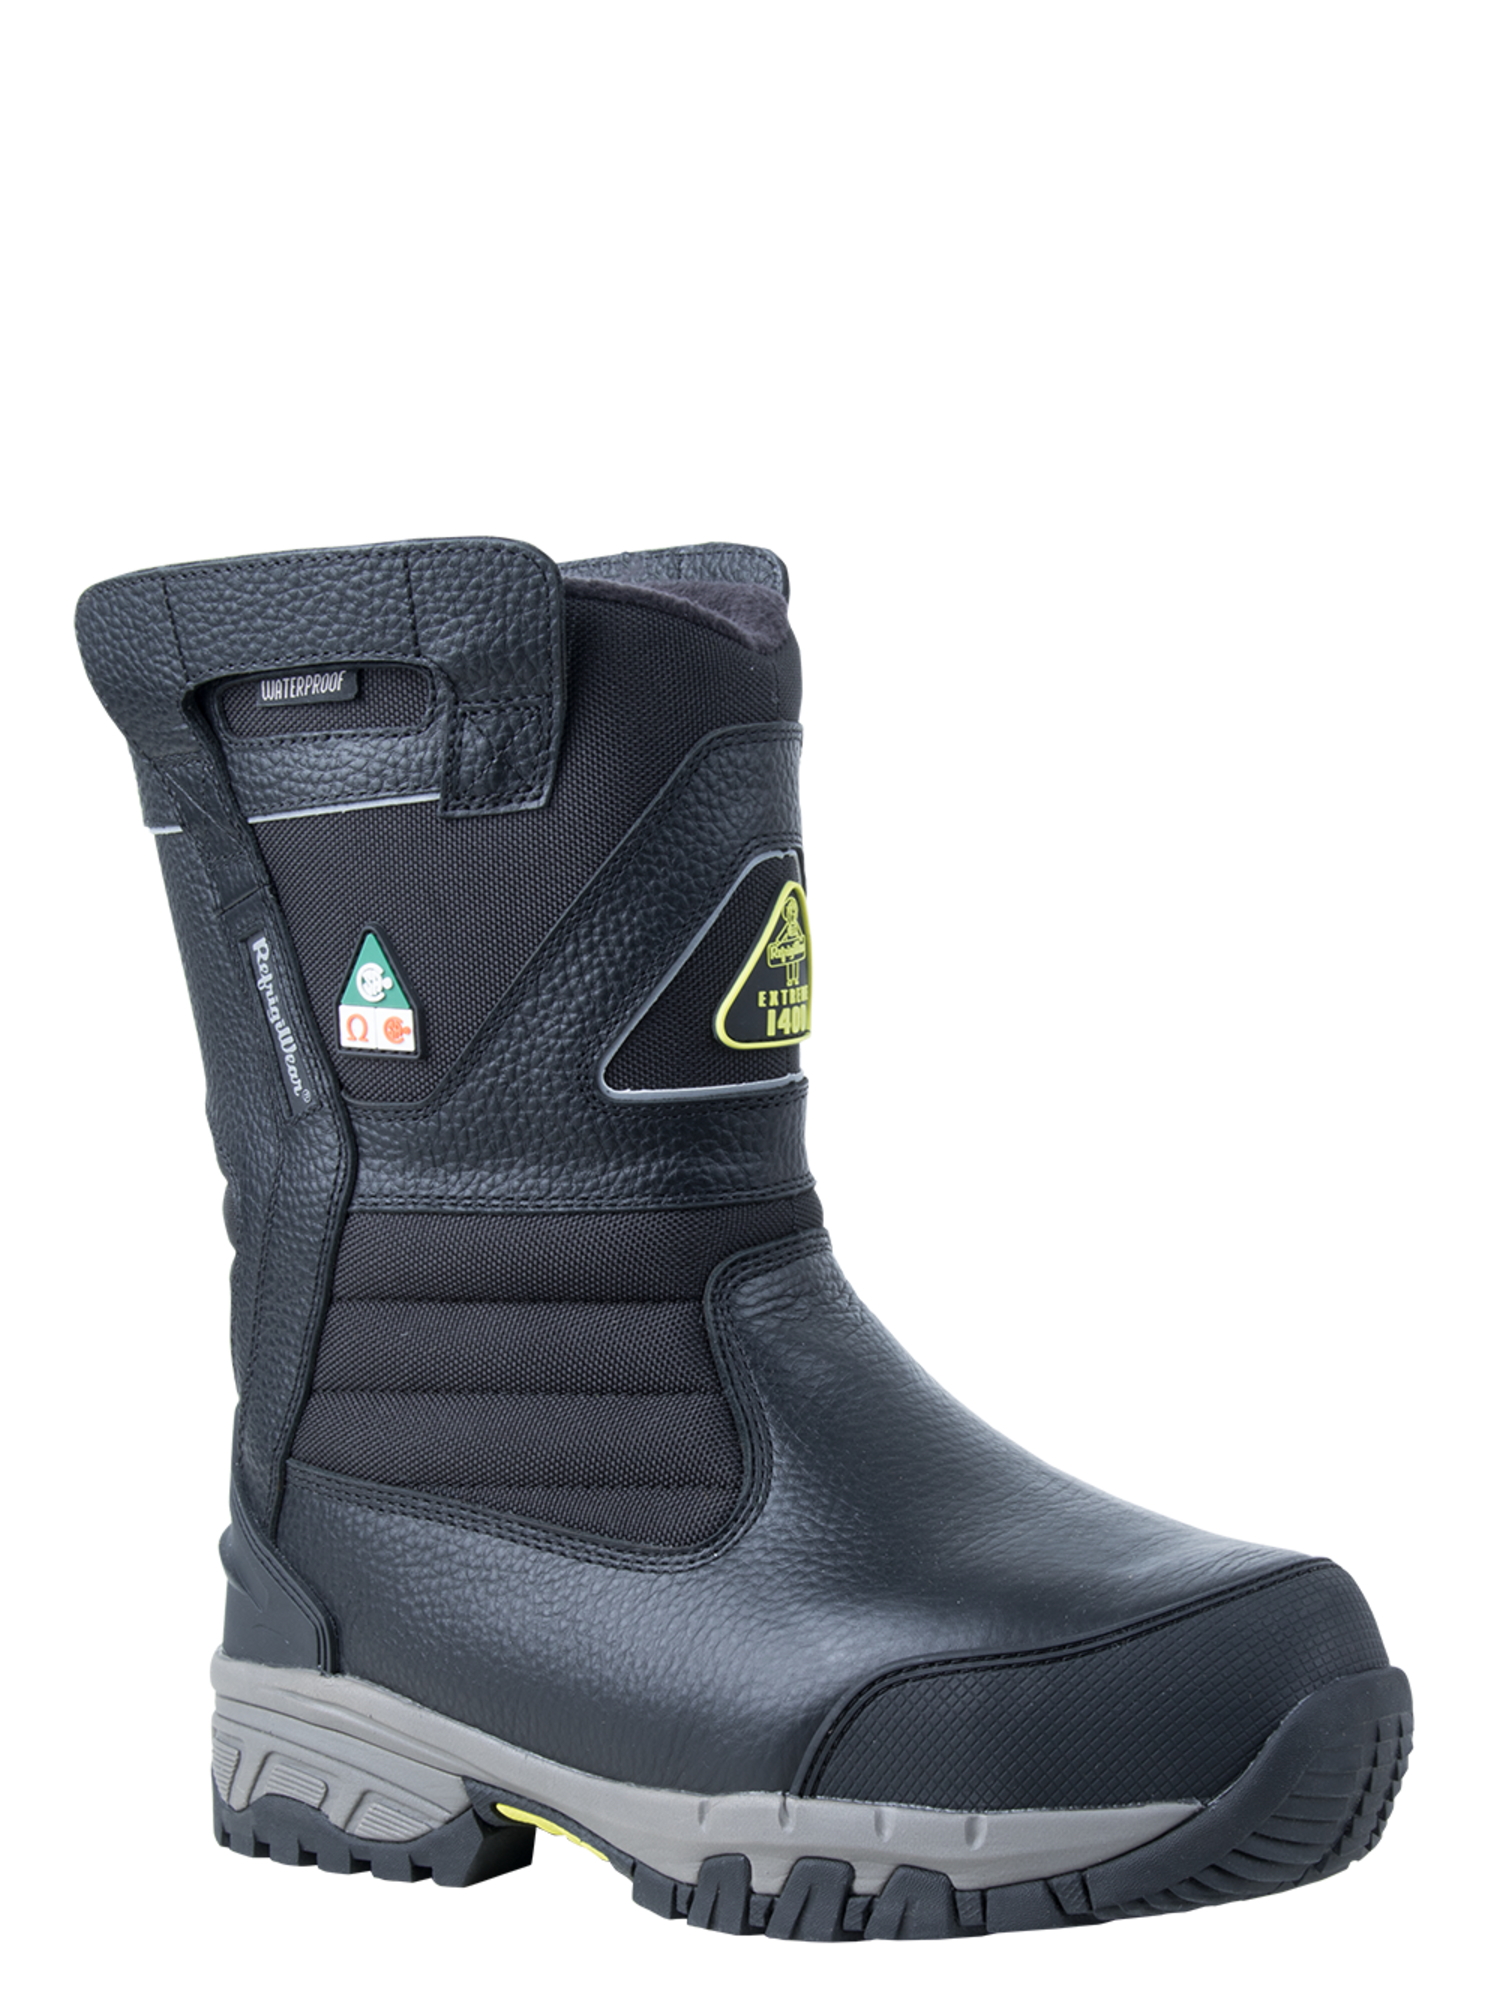 RefrigiWear™ Extreme Freezer Pull-On Boot | Waterproof | Black | 14 | Leather/Nylon